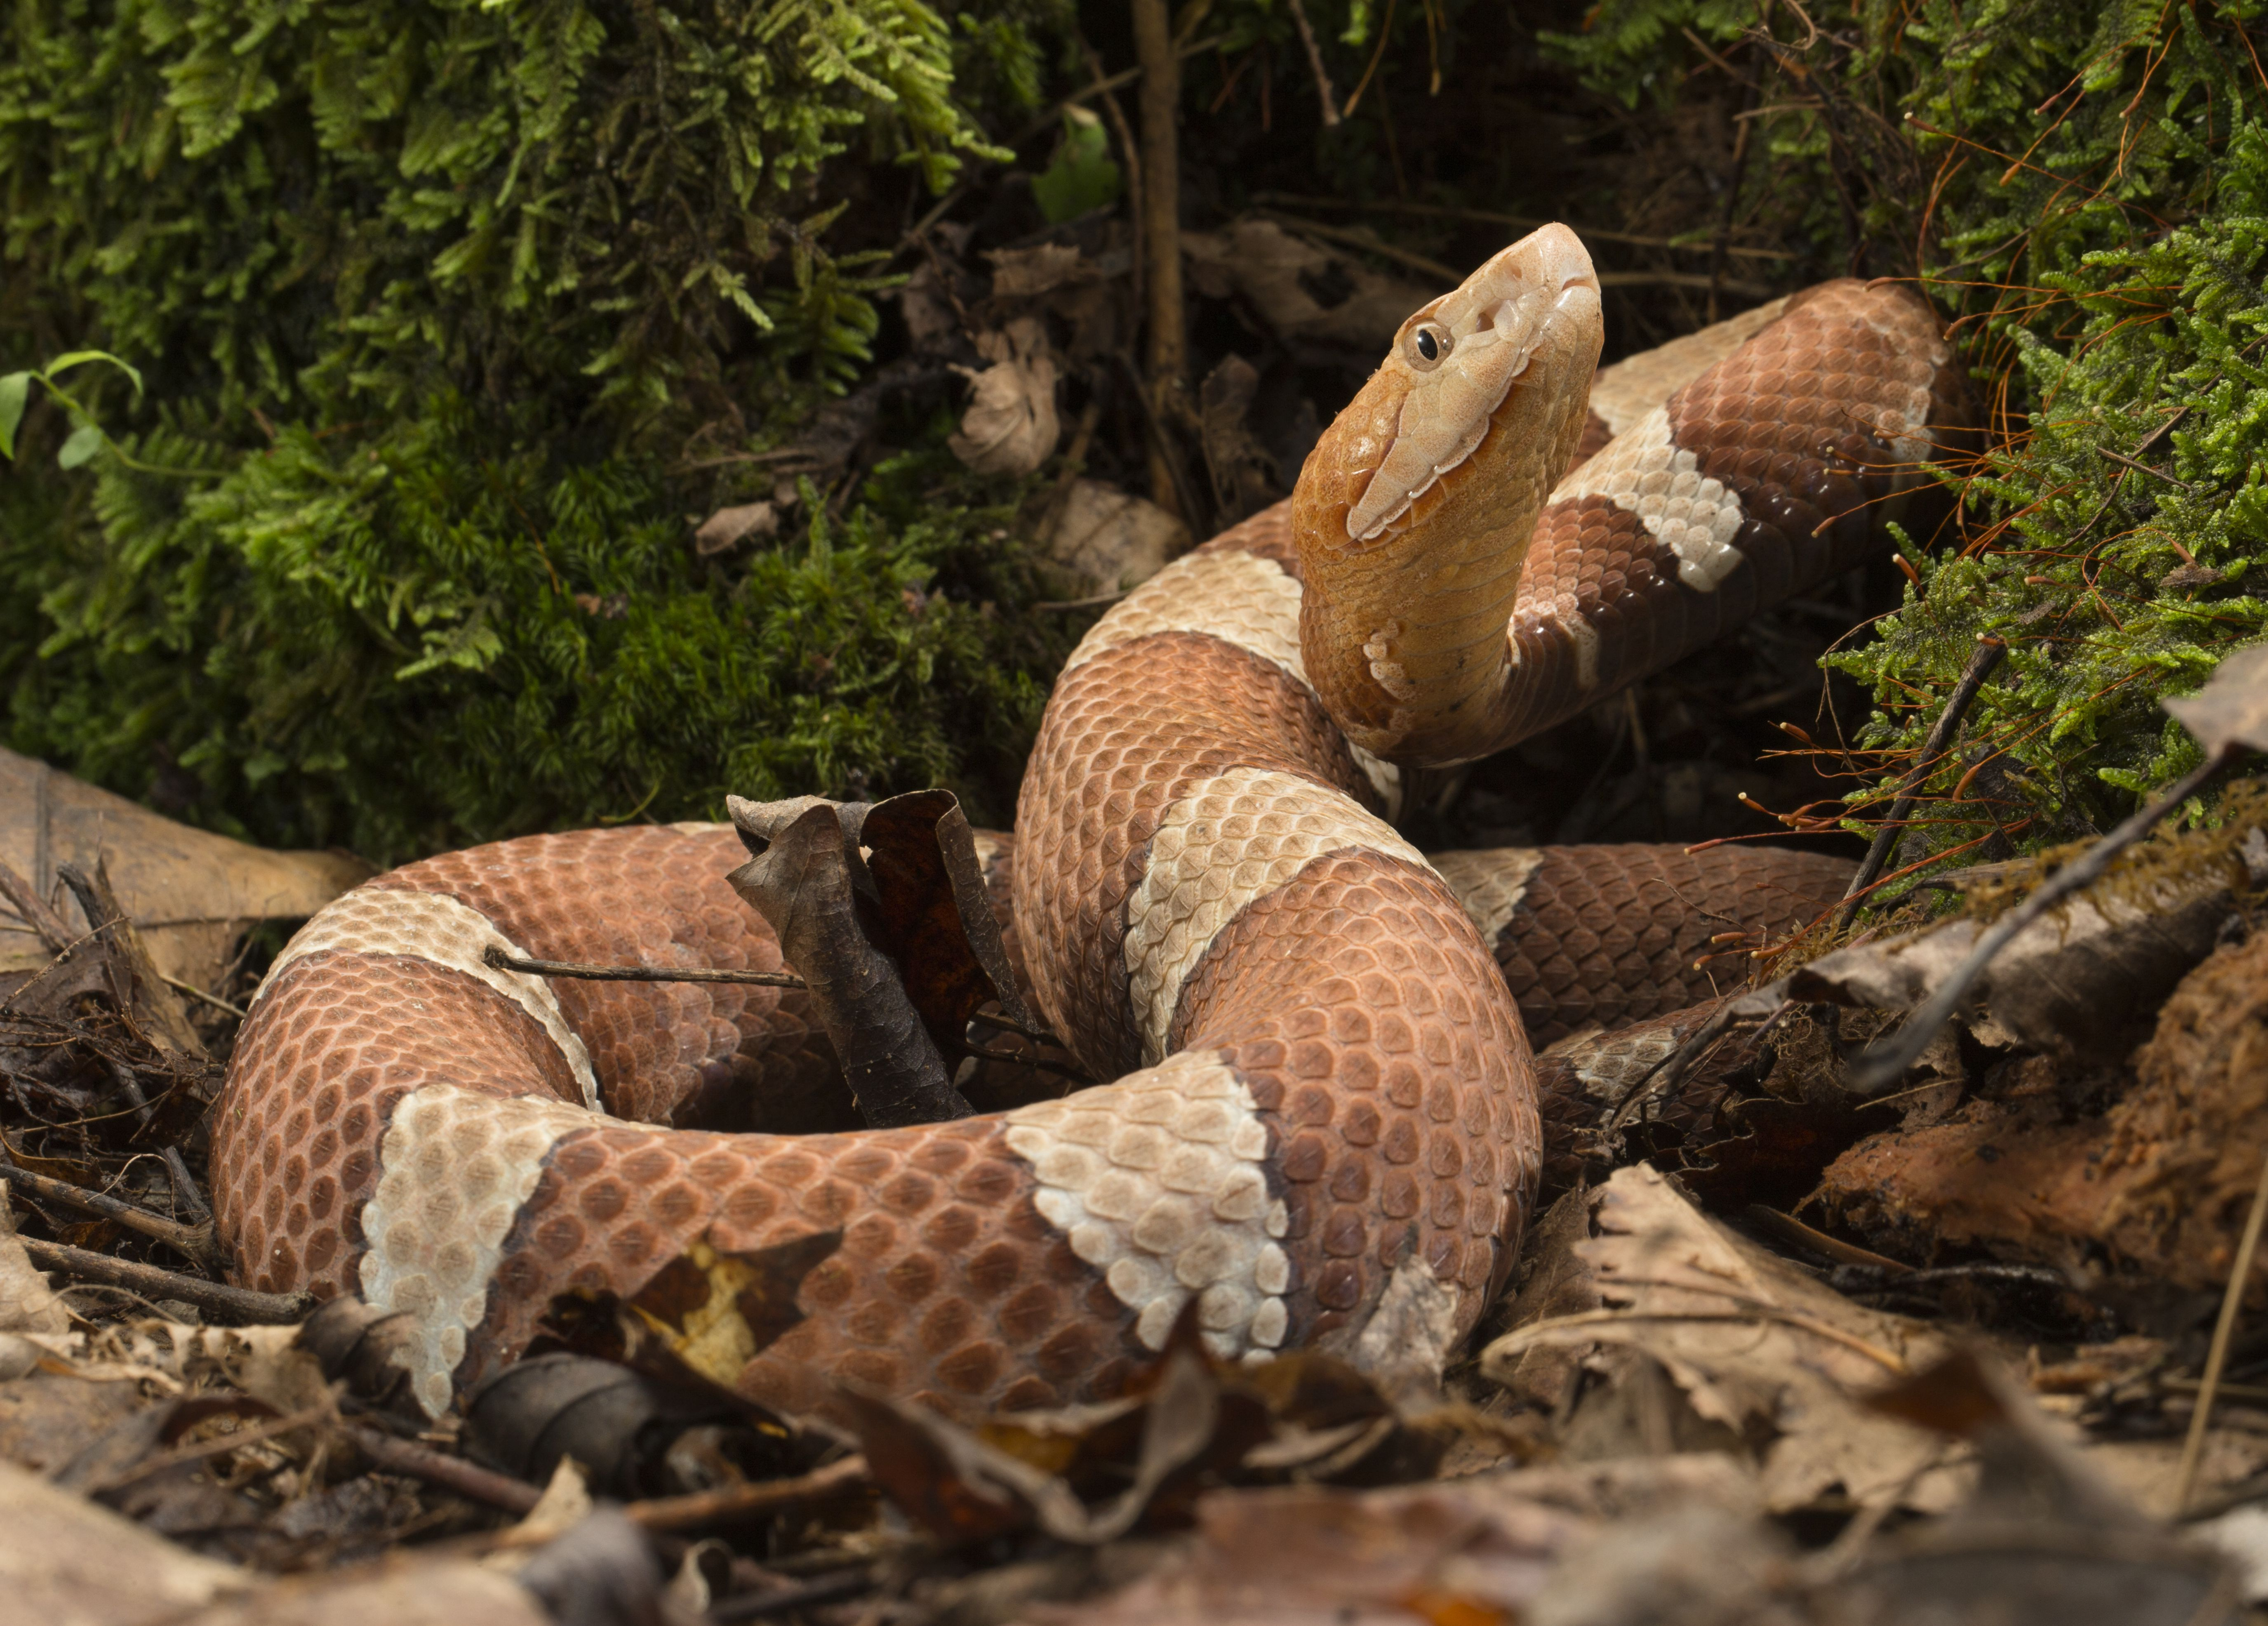 38cd59a22d5c4fc38bd8a28b022d1d53 - How To Get Rid Of Copperhead Snakes In Your Yard